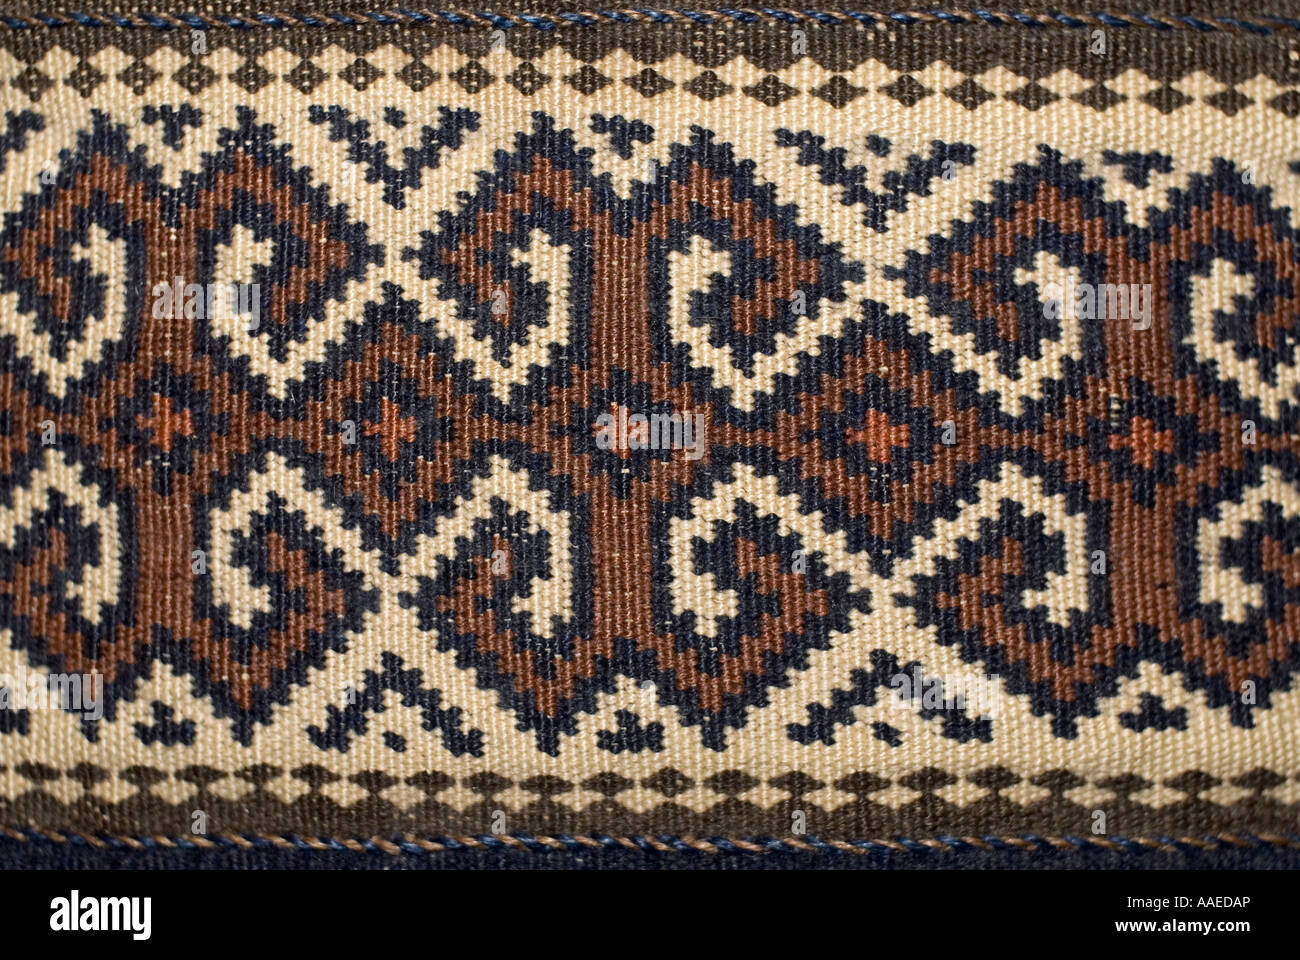 Detail of woollen weaving from northern Persia with geometric motifs - Stock Image